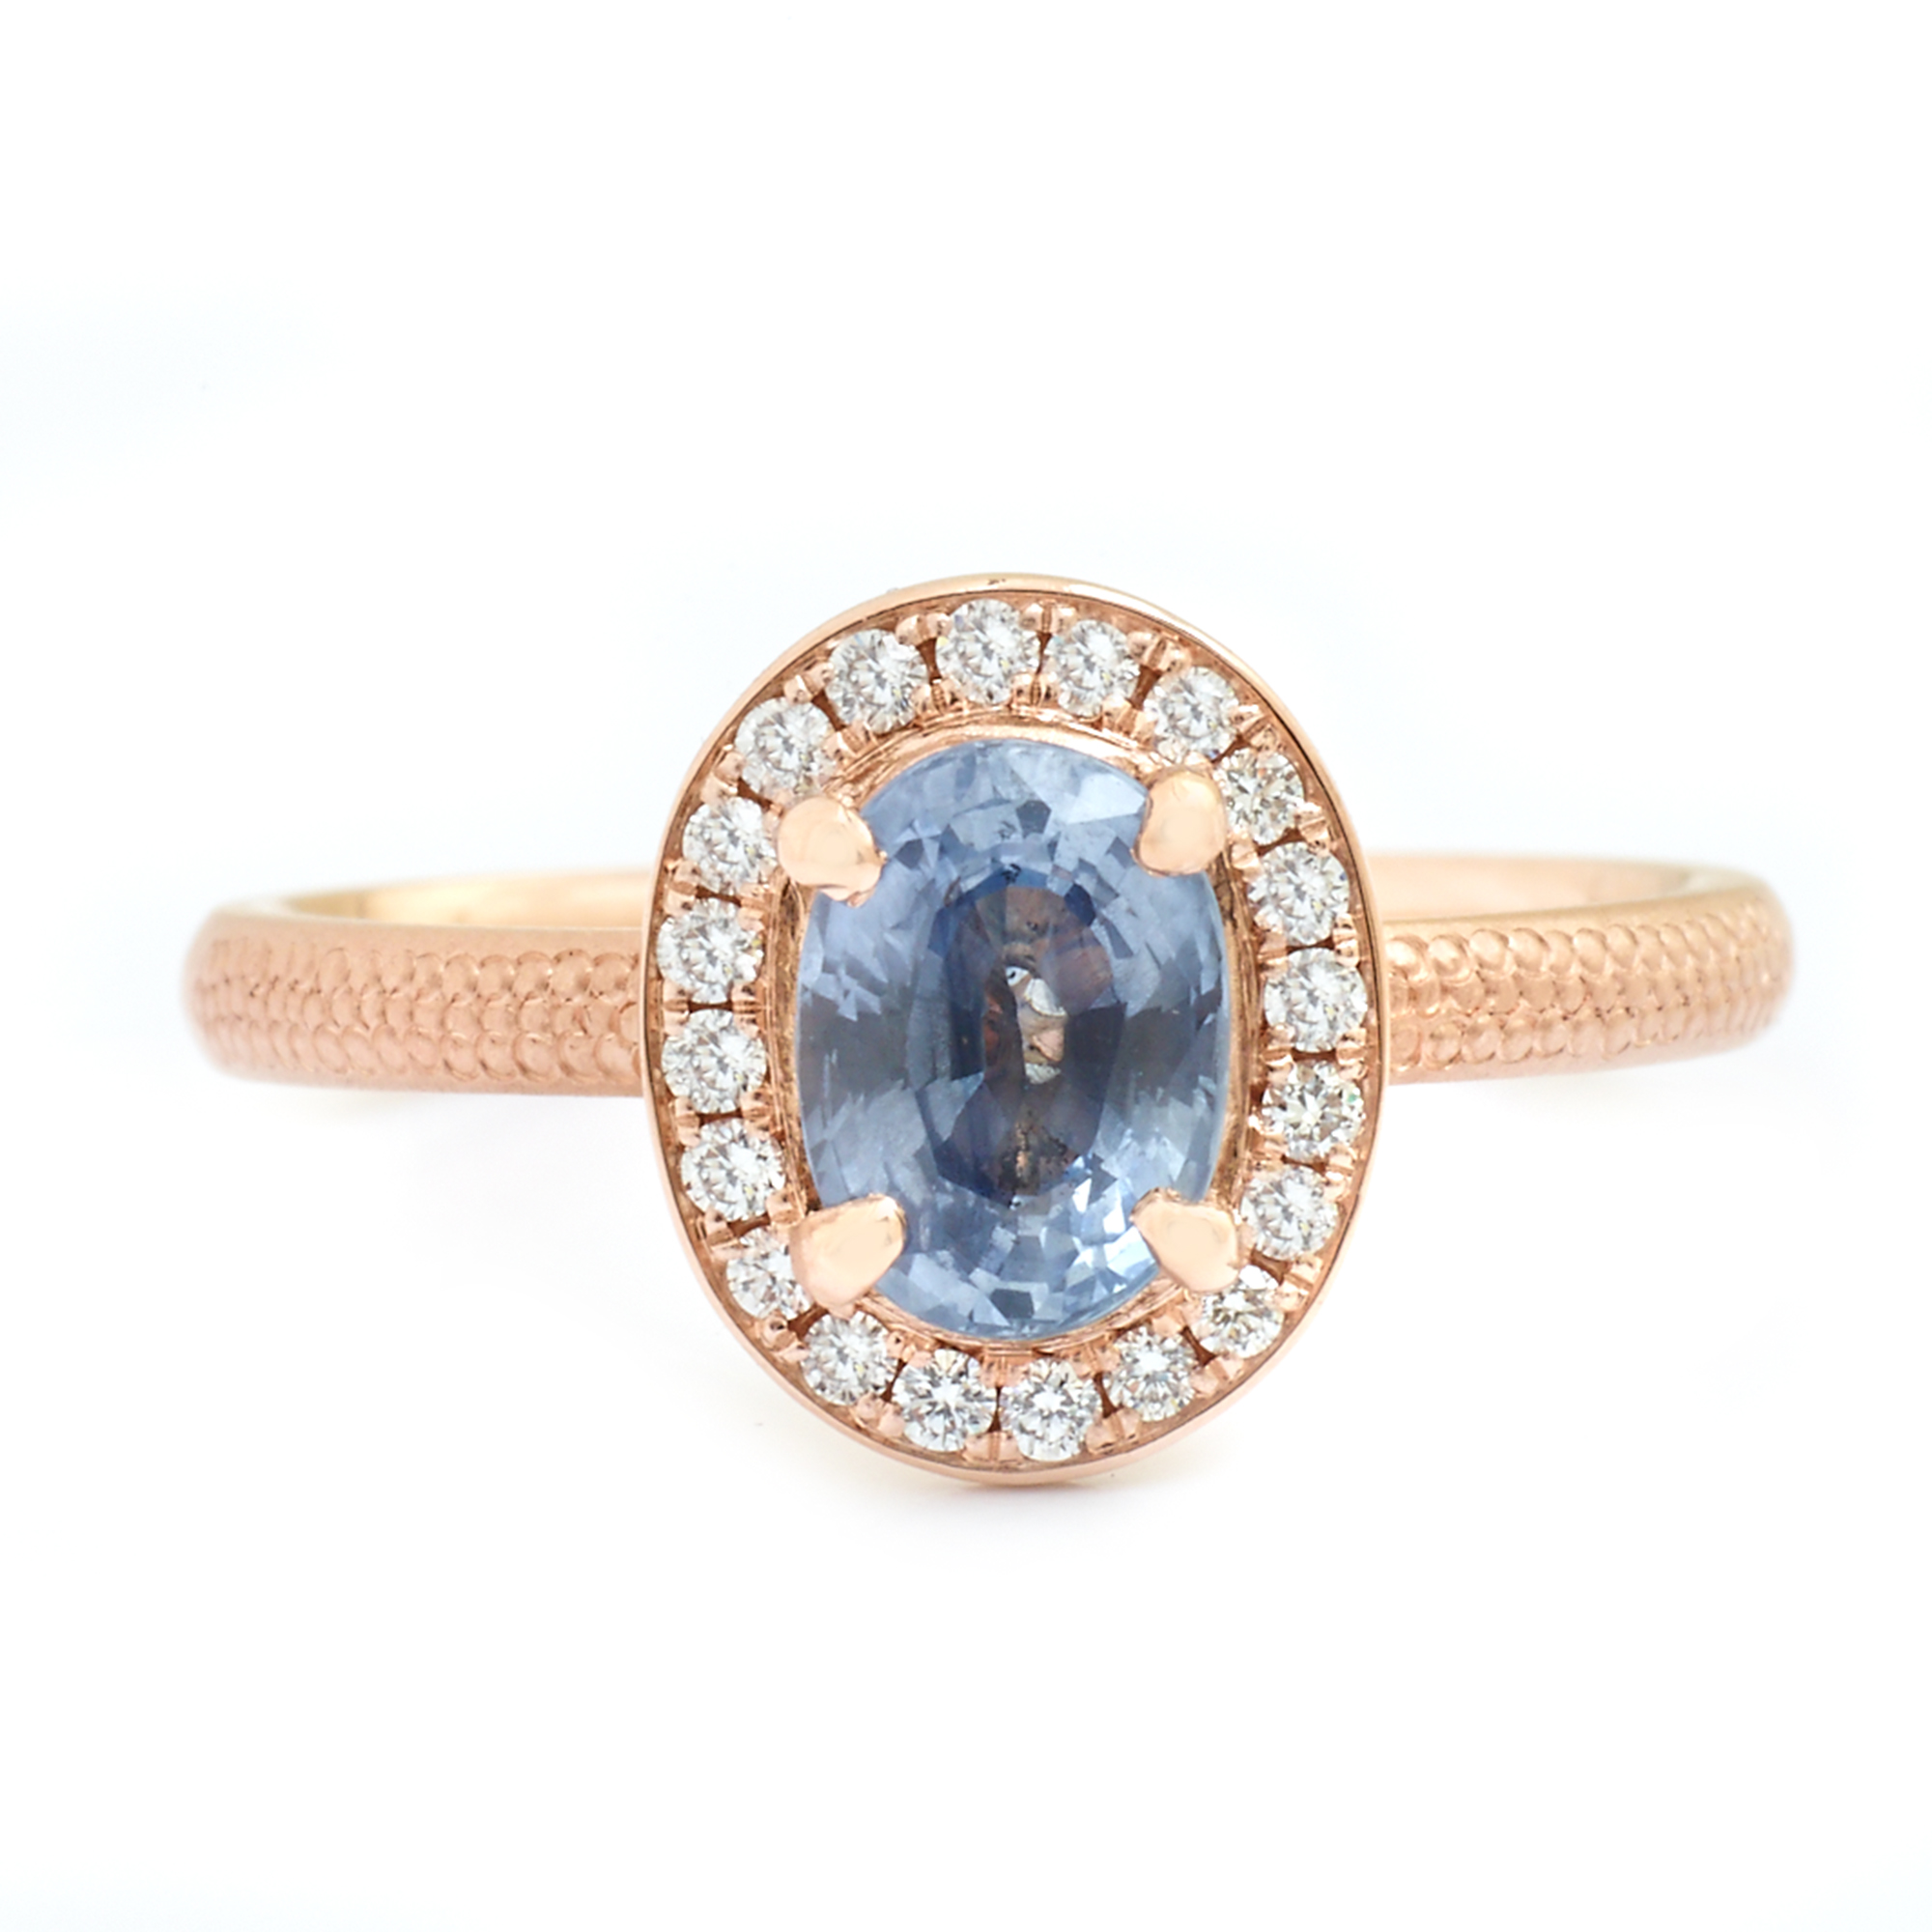 ring img rose white yellow design products in size engagement rings cut gold your made moonstone rainbow manari